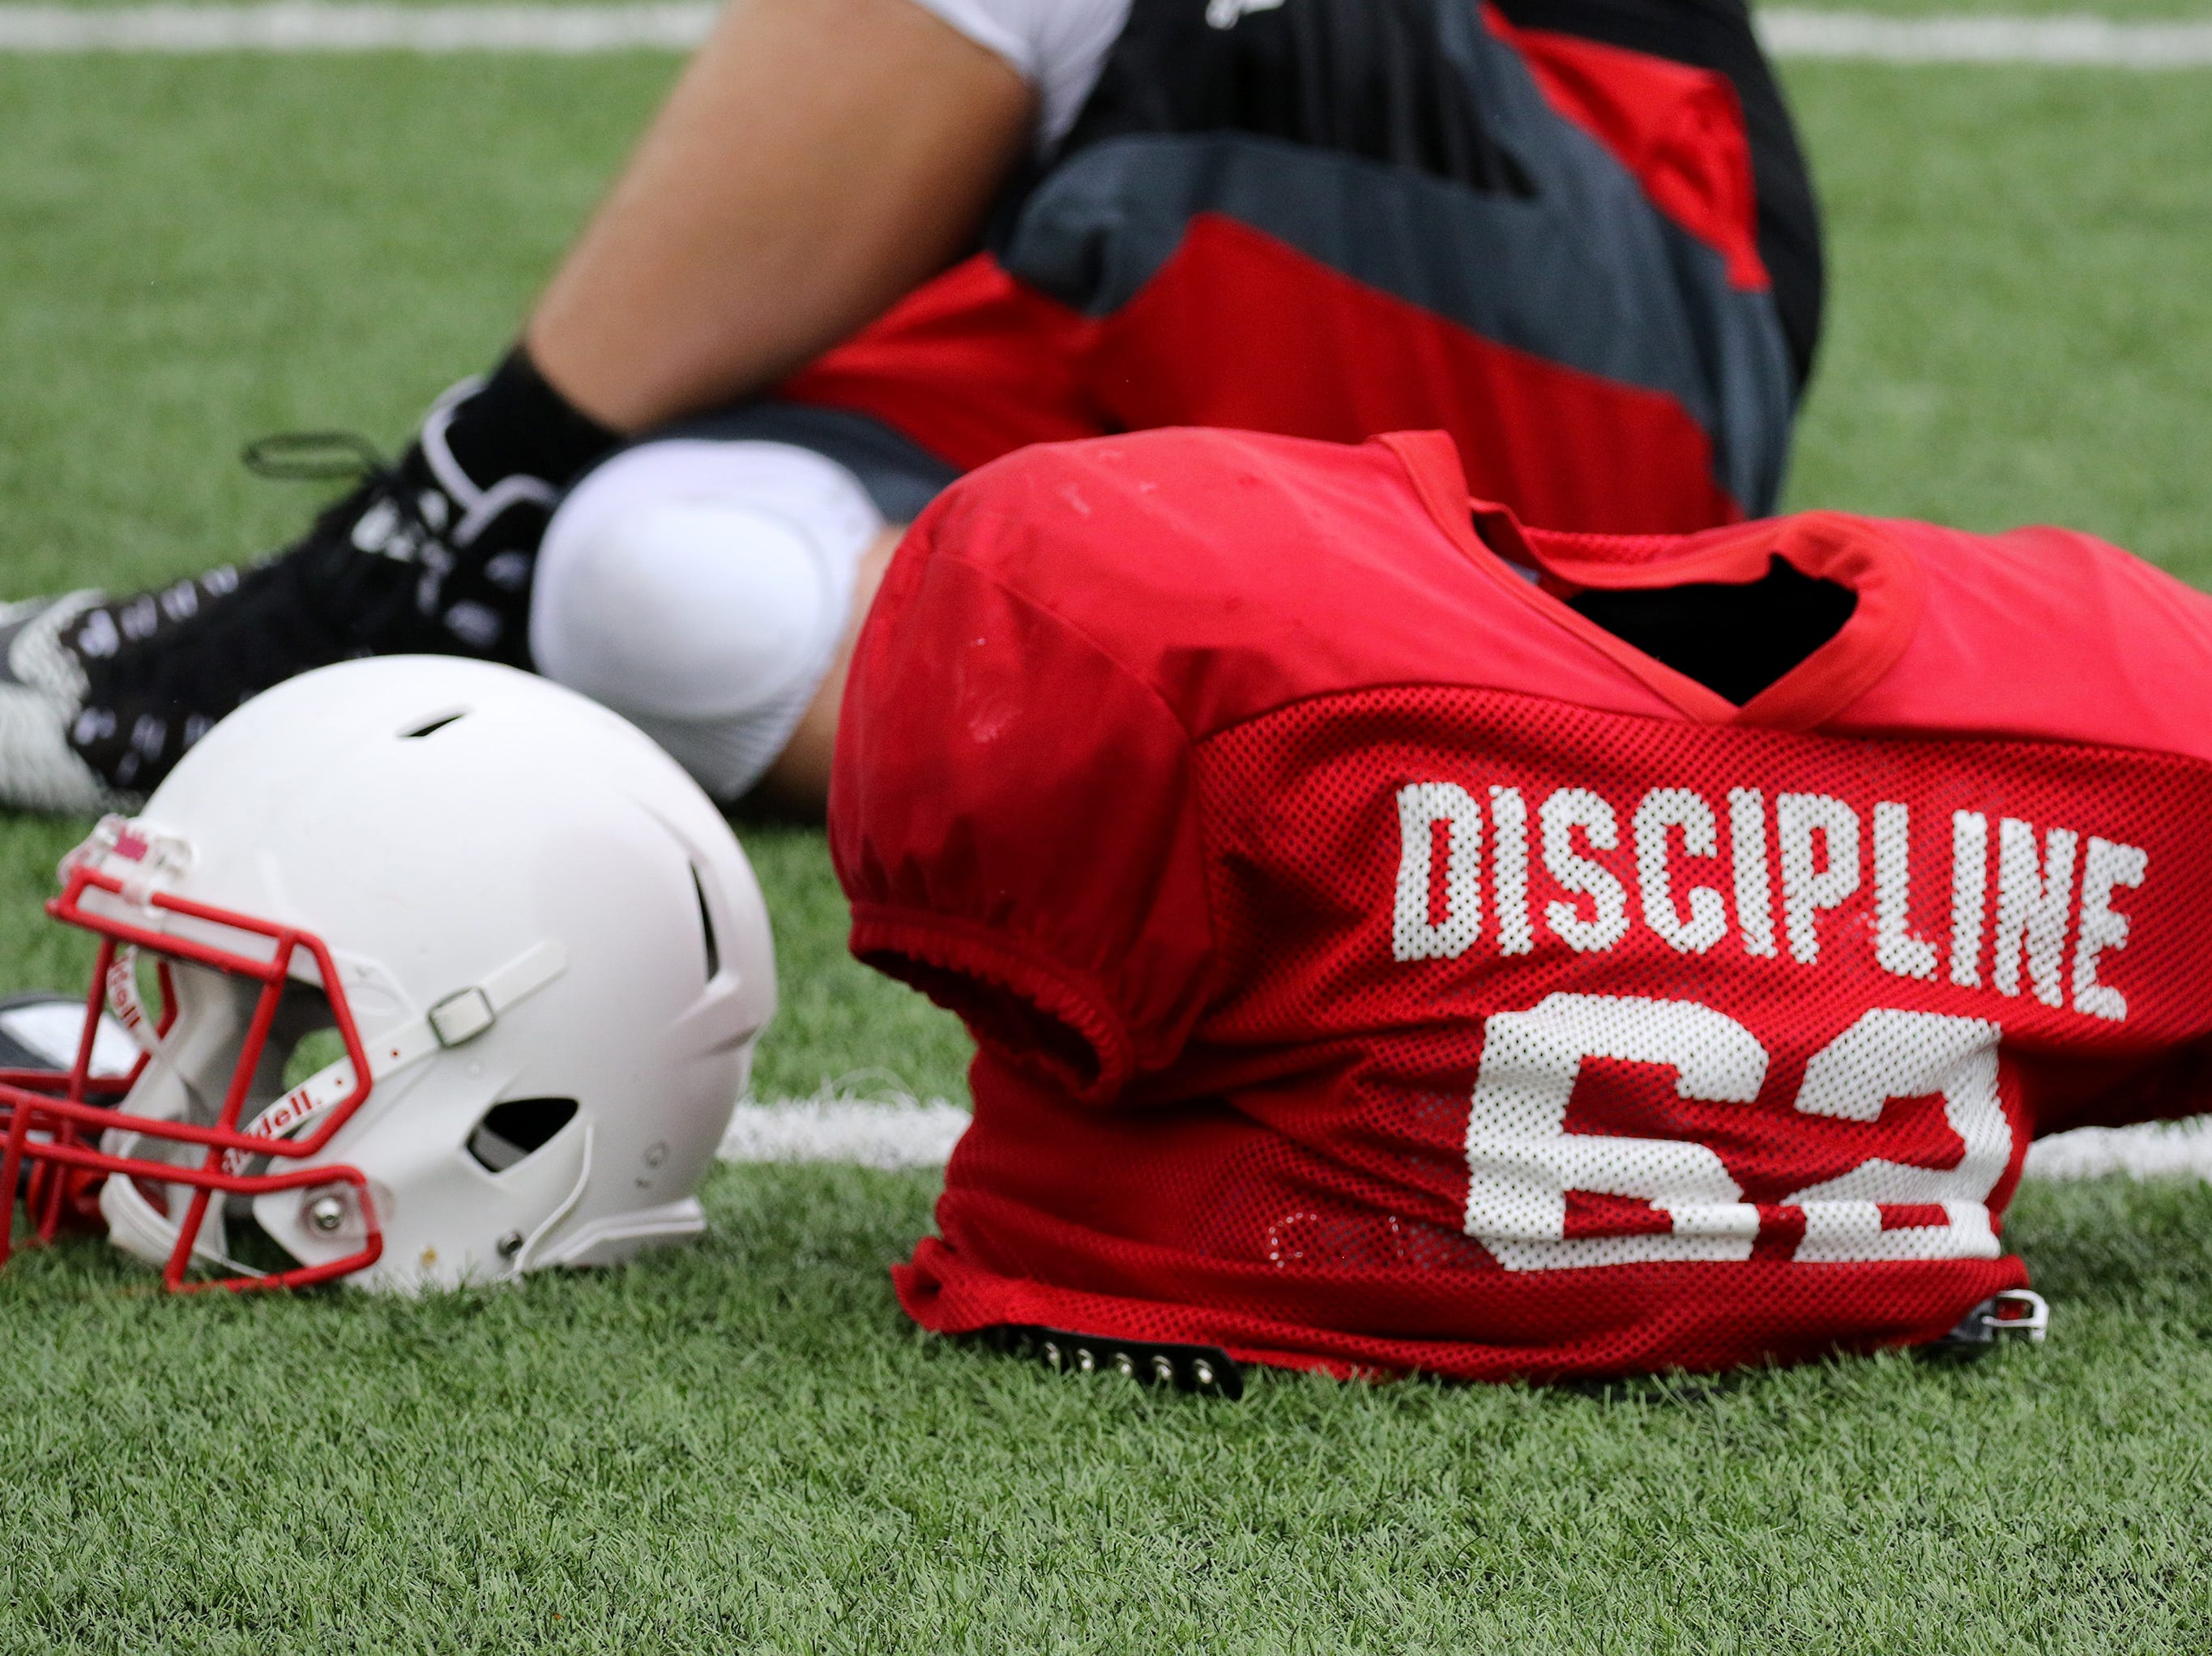 Pride and Discipline are two theme word for the Homestead football team, as seen on practice uniforms on Aug. 9.